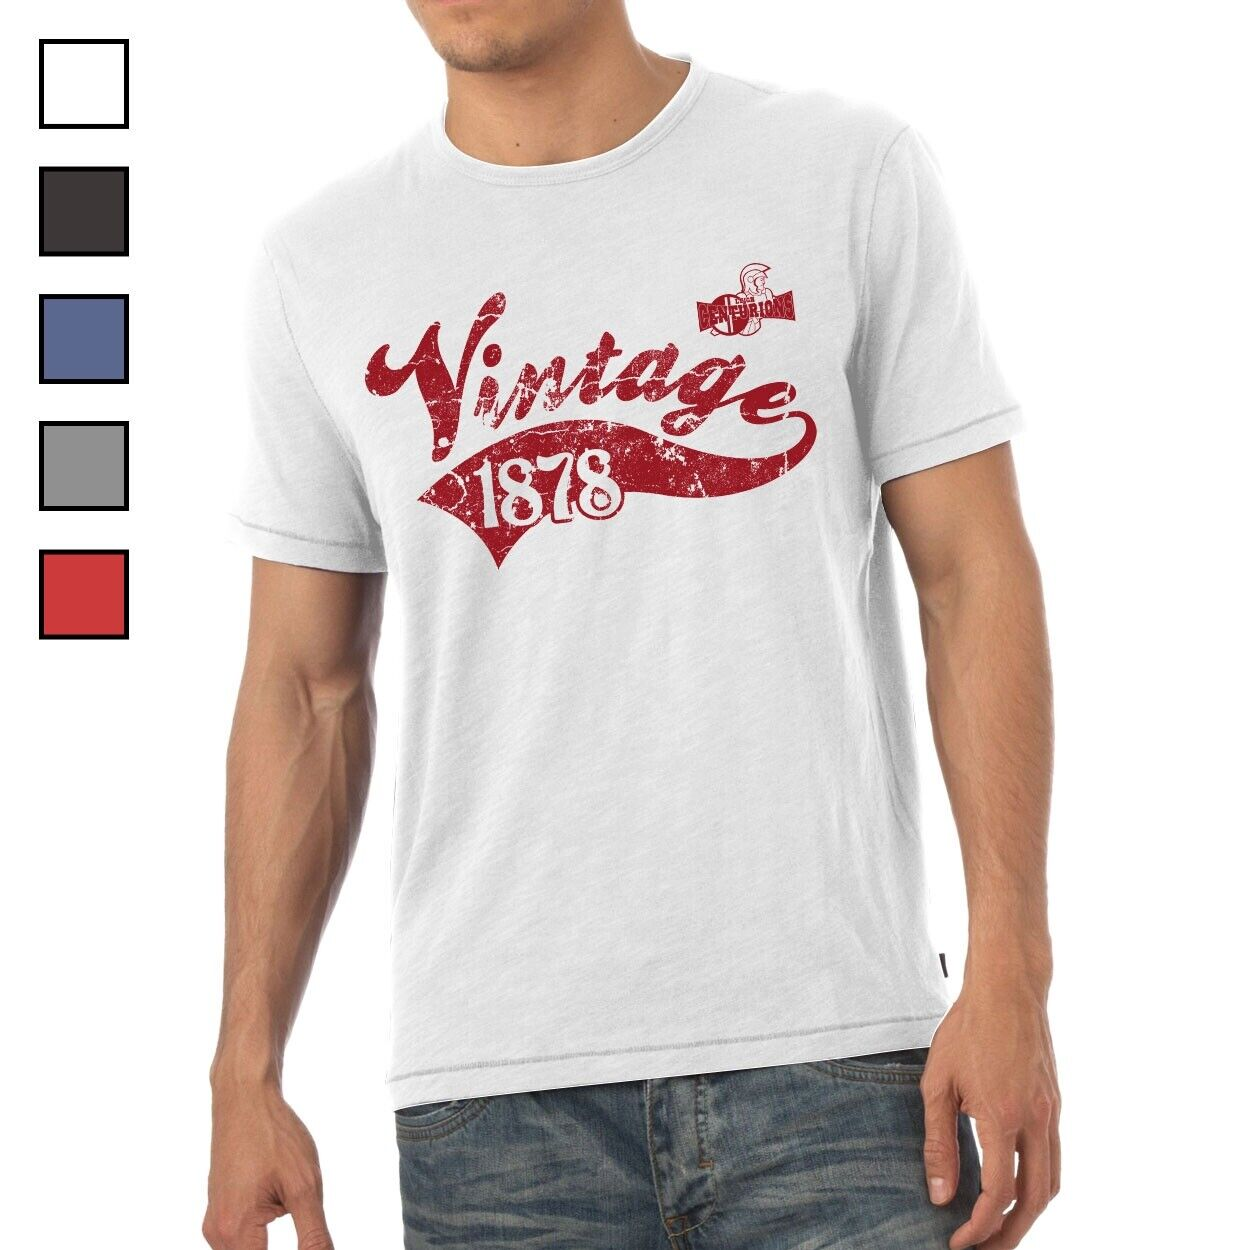 Leigh Centurions - Personalised Mens T-Shirt (VINTAGE)